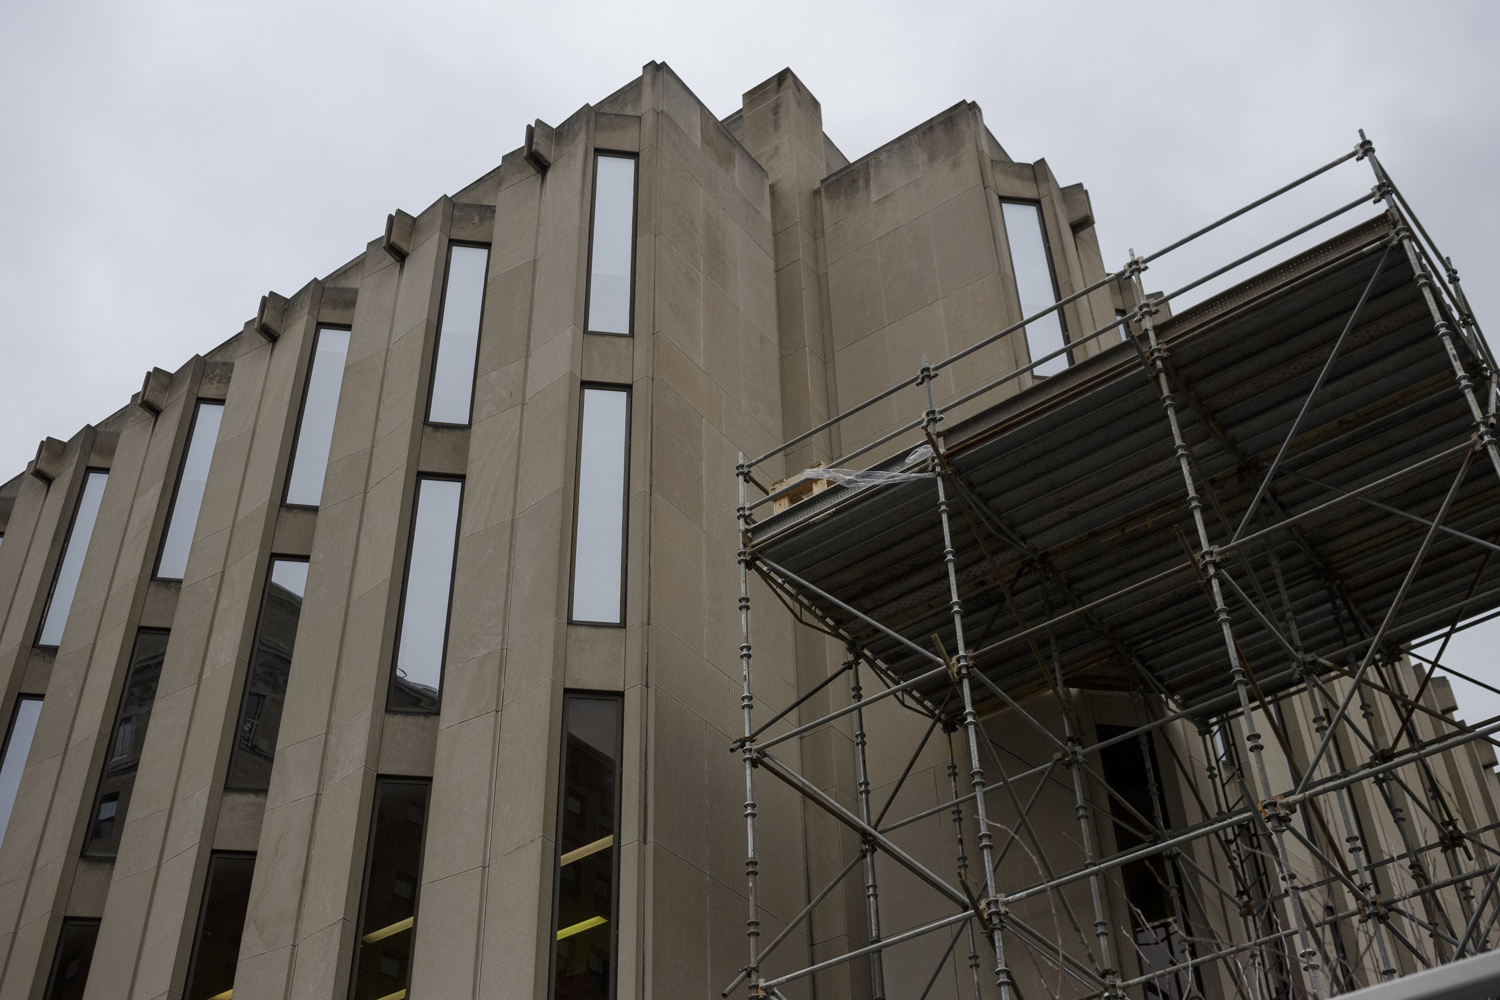 Hillman Library's renovations are aimed for completion by 2023.